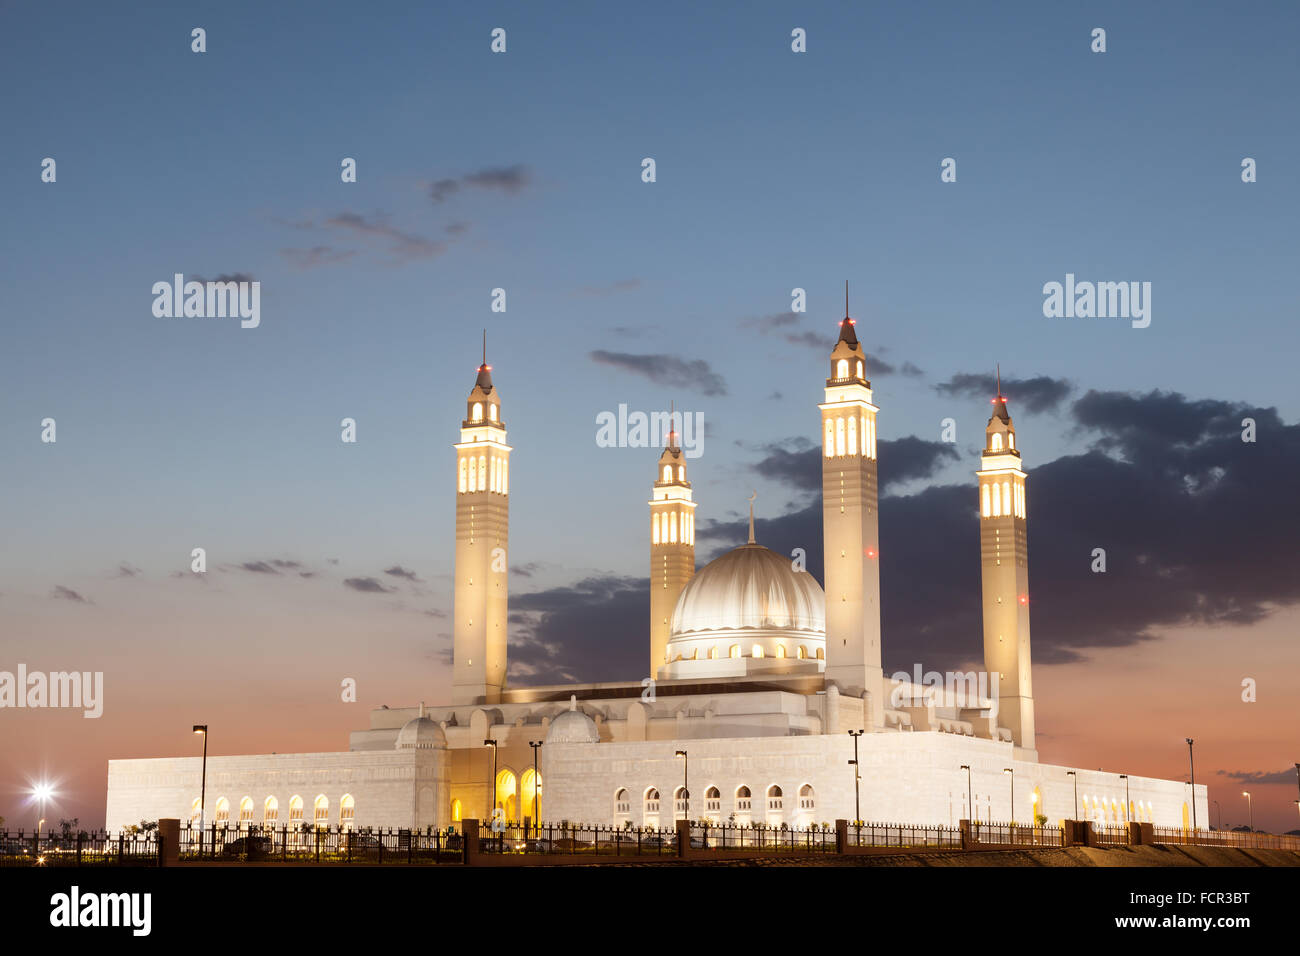 Grand mosque in Nizwa illuminated at night. Sultanate of Oman, Middle East - Stock Image